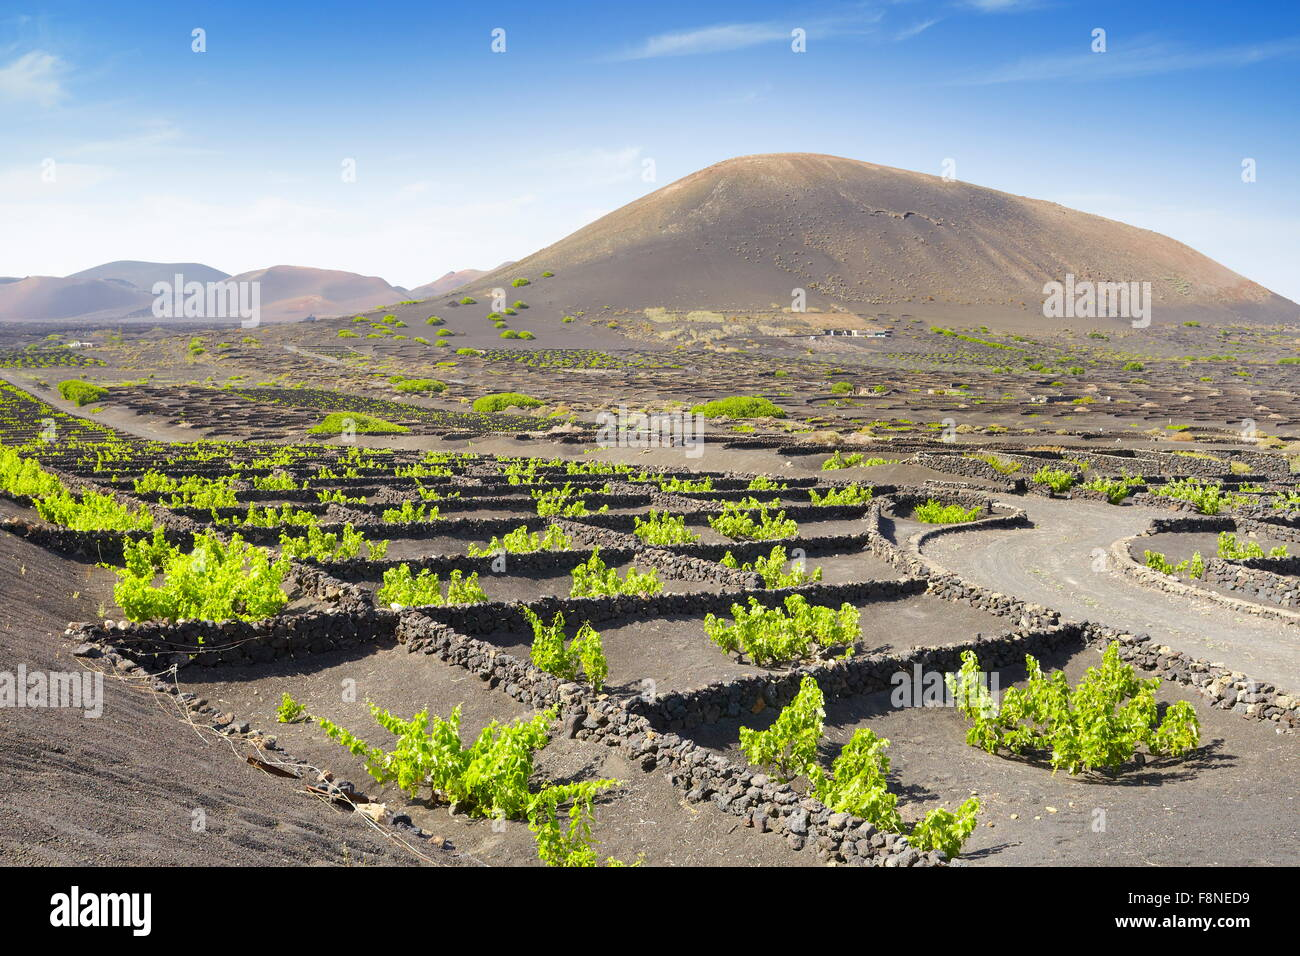 Plantation of vines in volcanic ground in La Geria, Lanzarote Island, Canary Islands, Spain - Stock Image